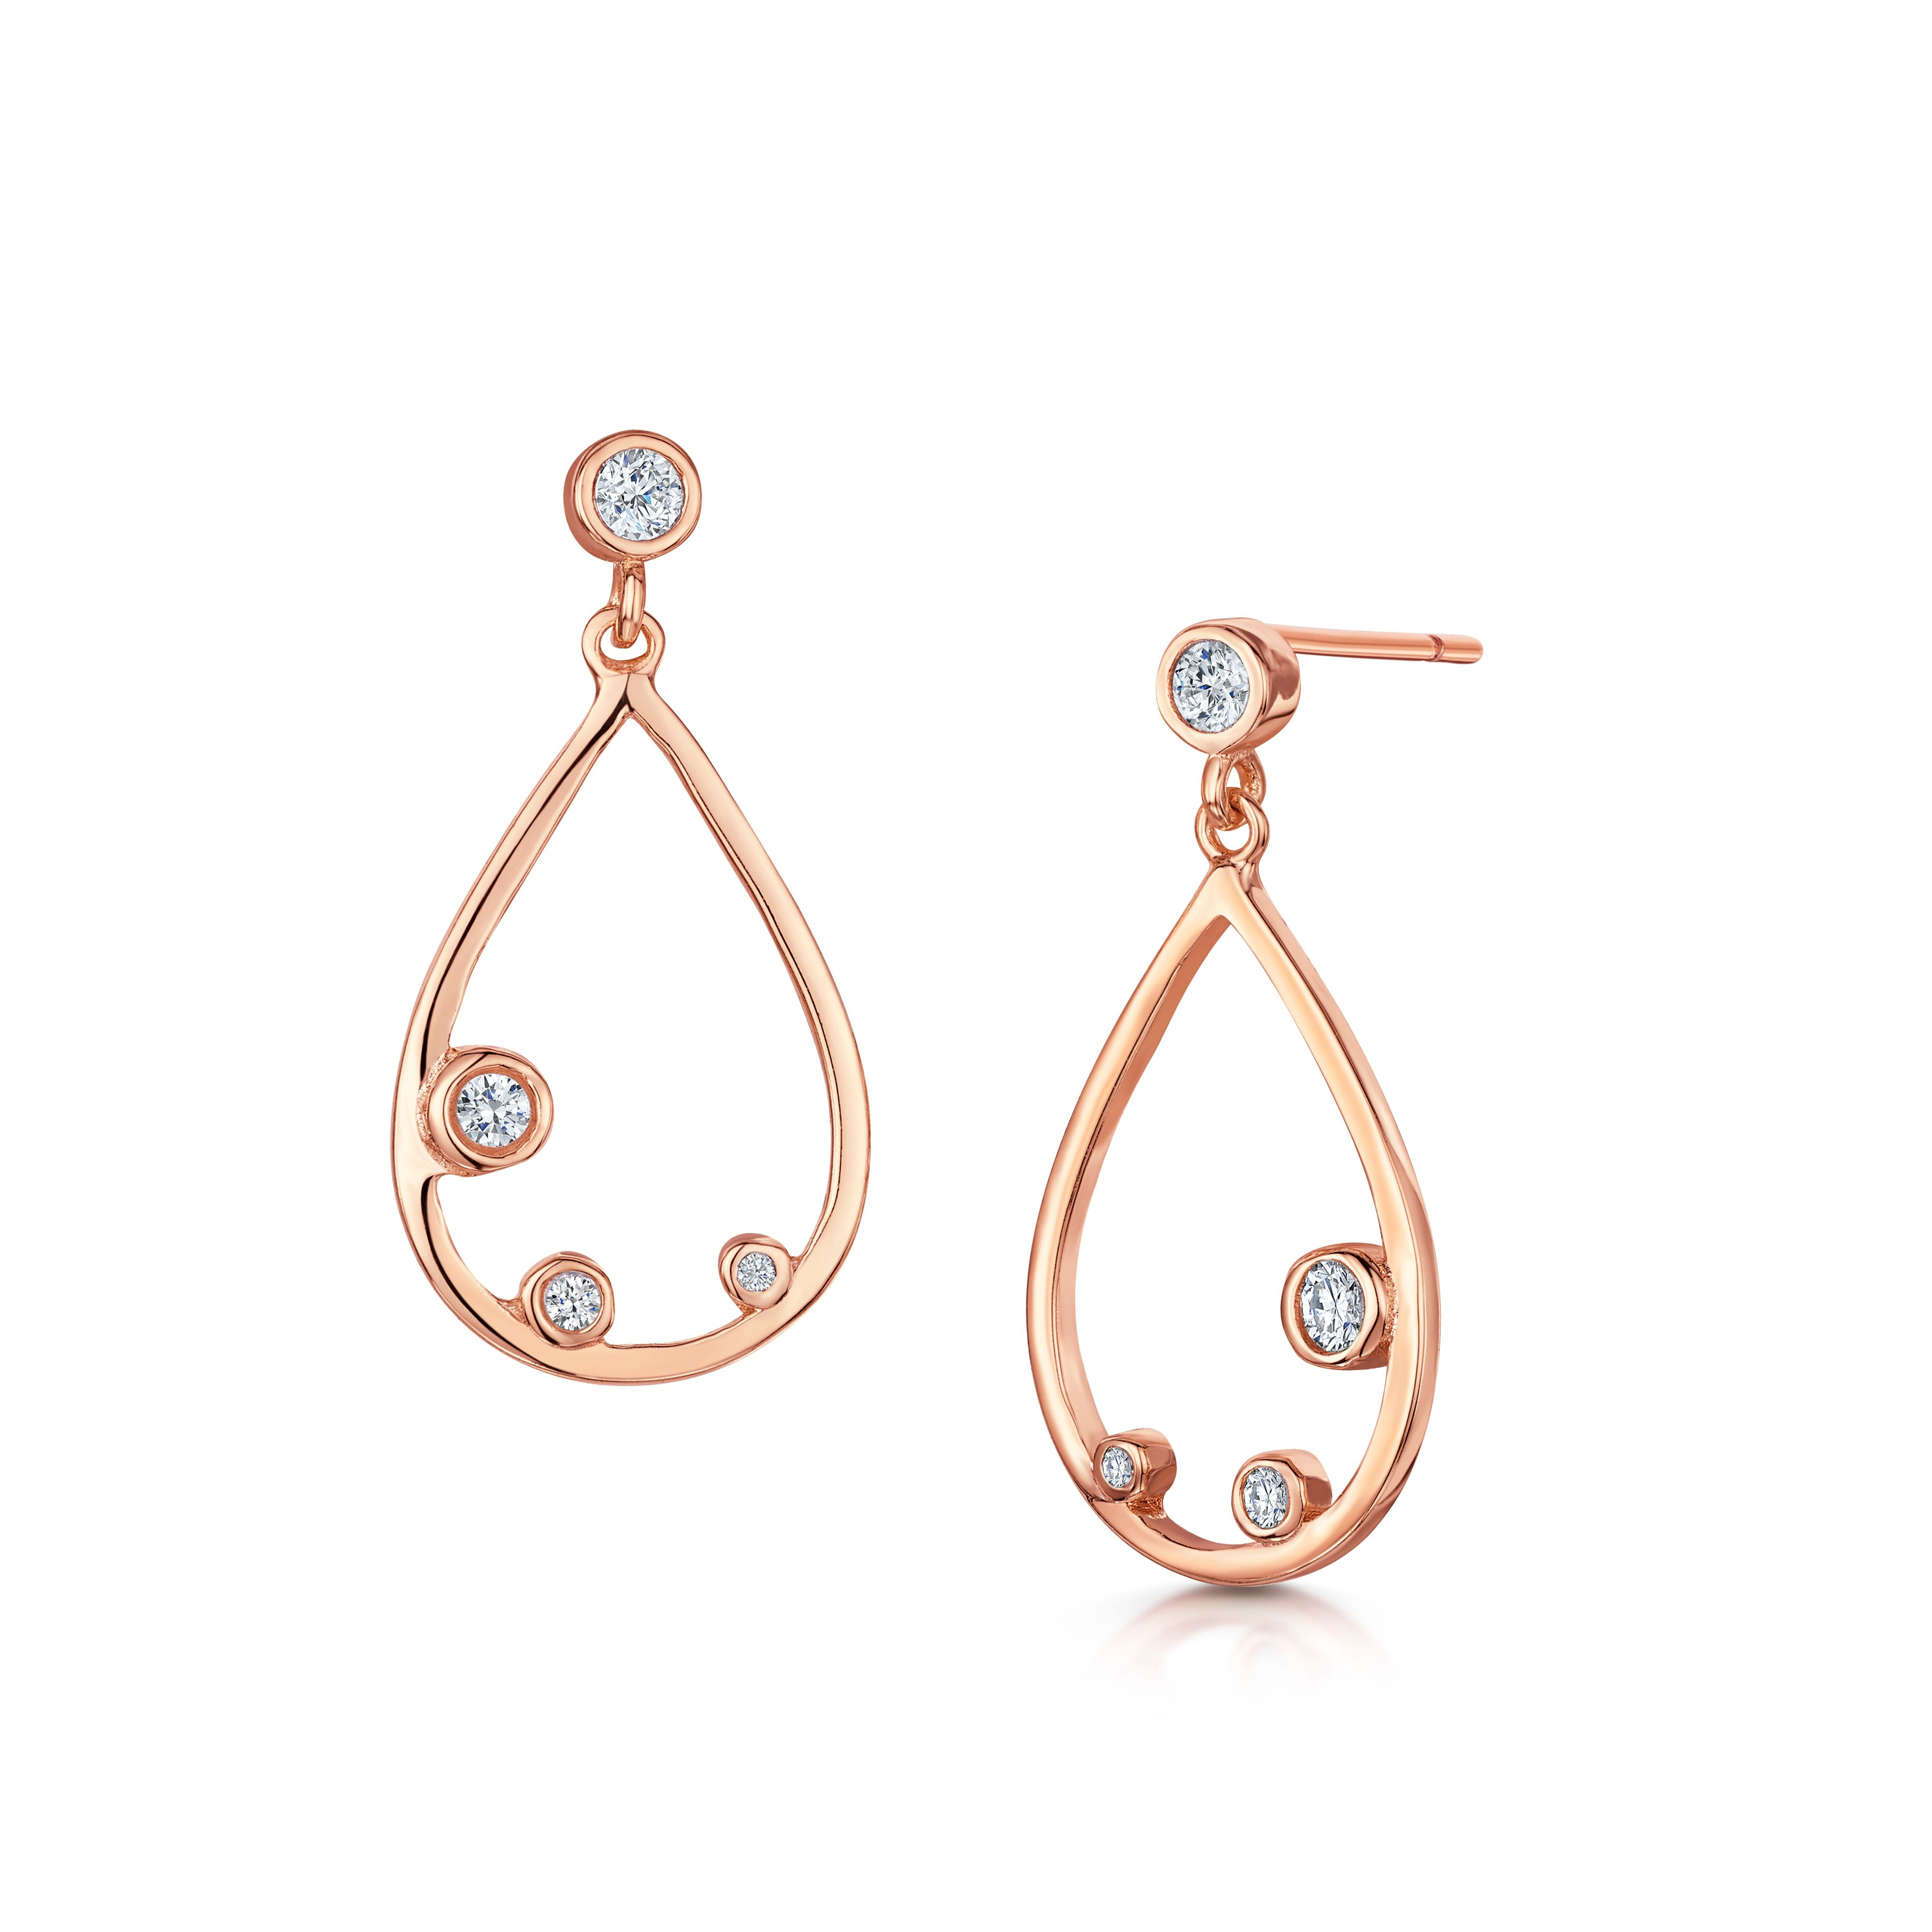 Infinity & Co Isabelle Earring, Pink